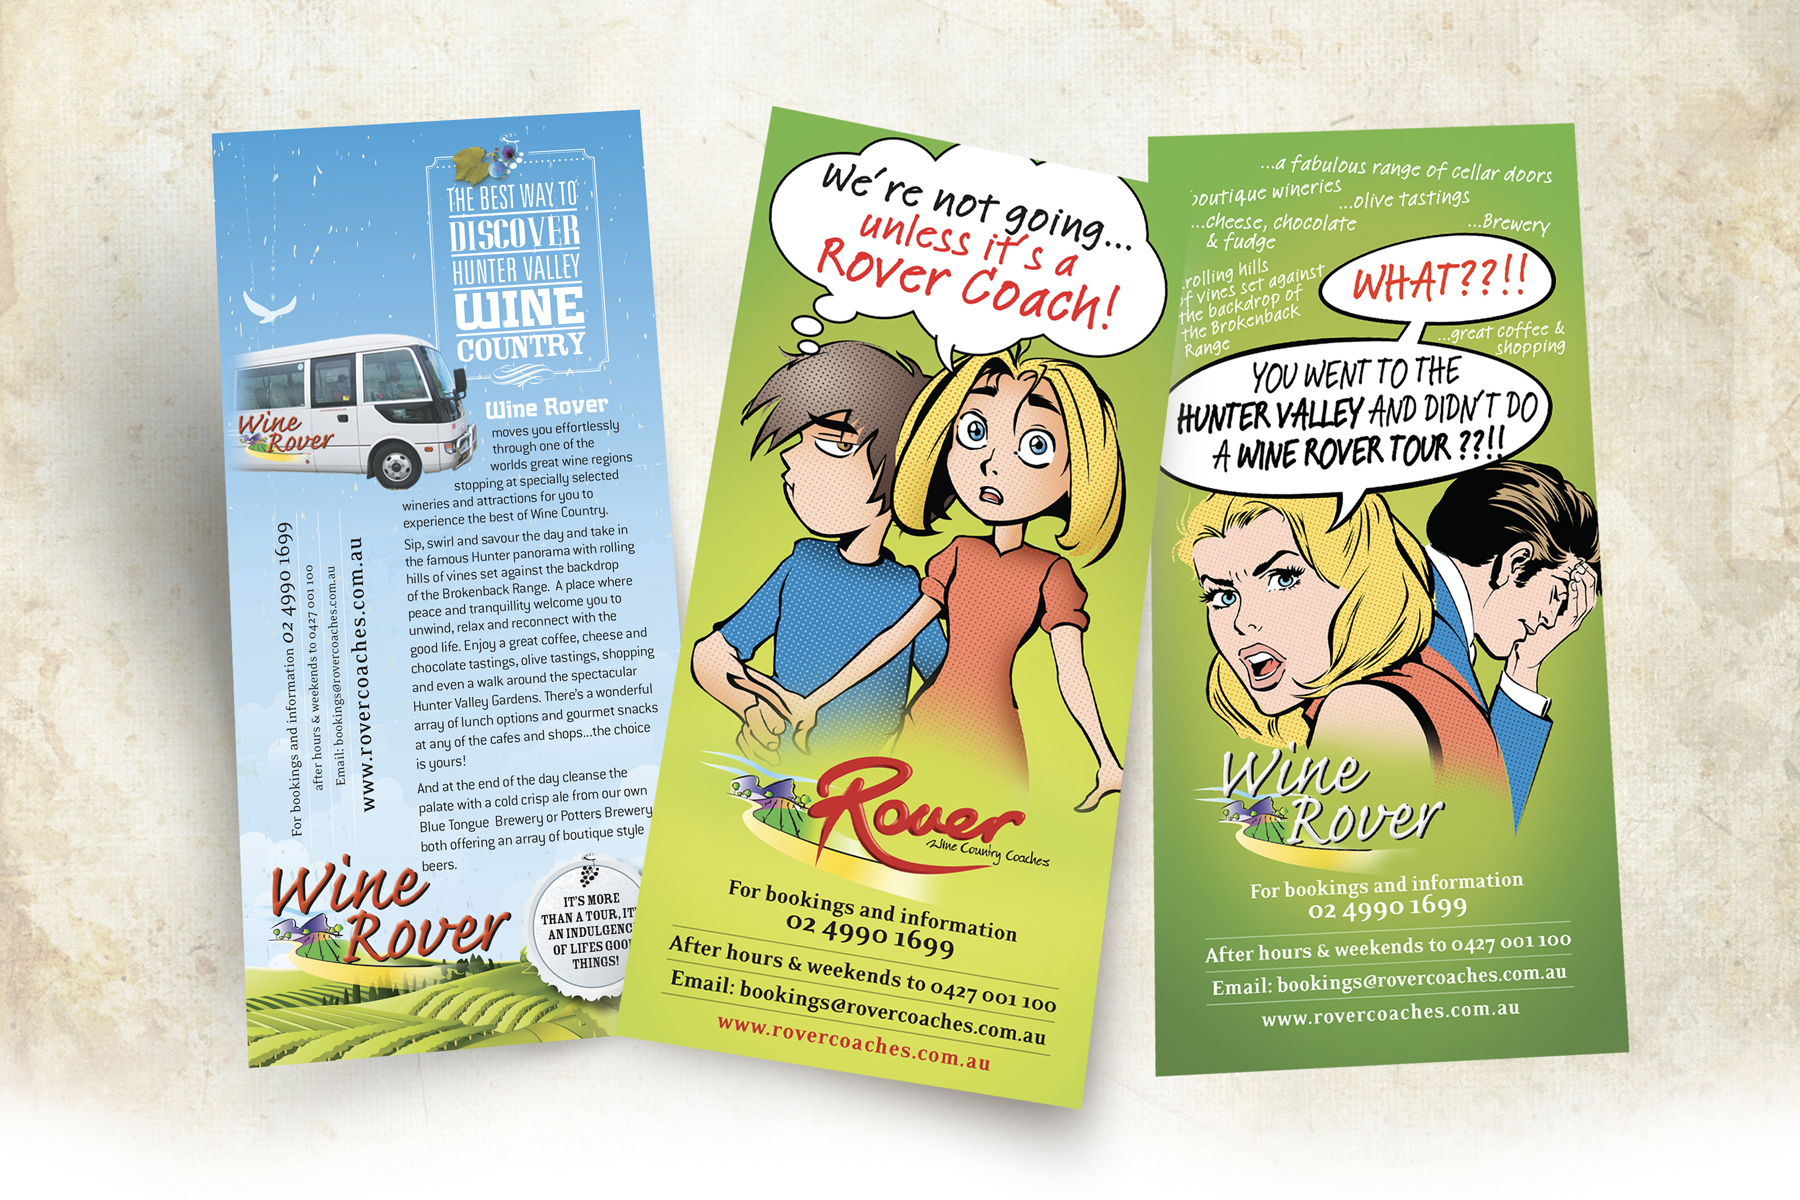 Rover Coaches DL Brochure Samples